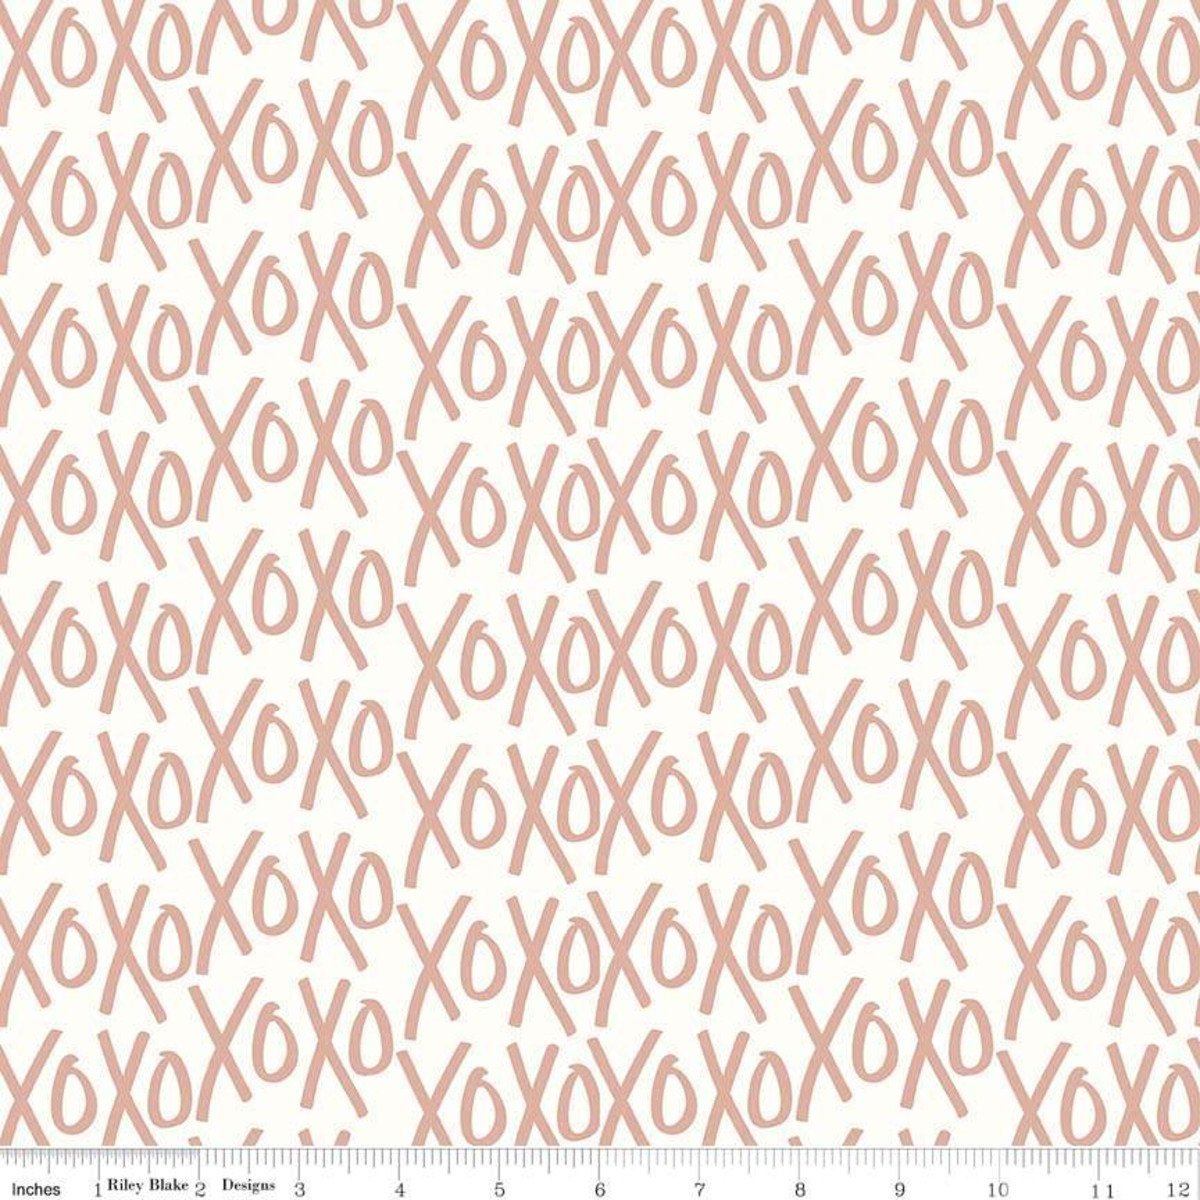 XOs - Yes Please - SC6552-CREAM